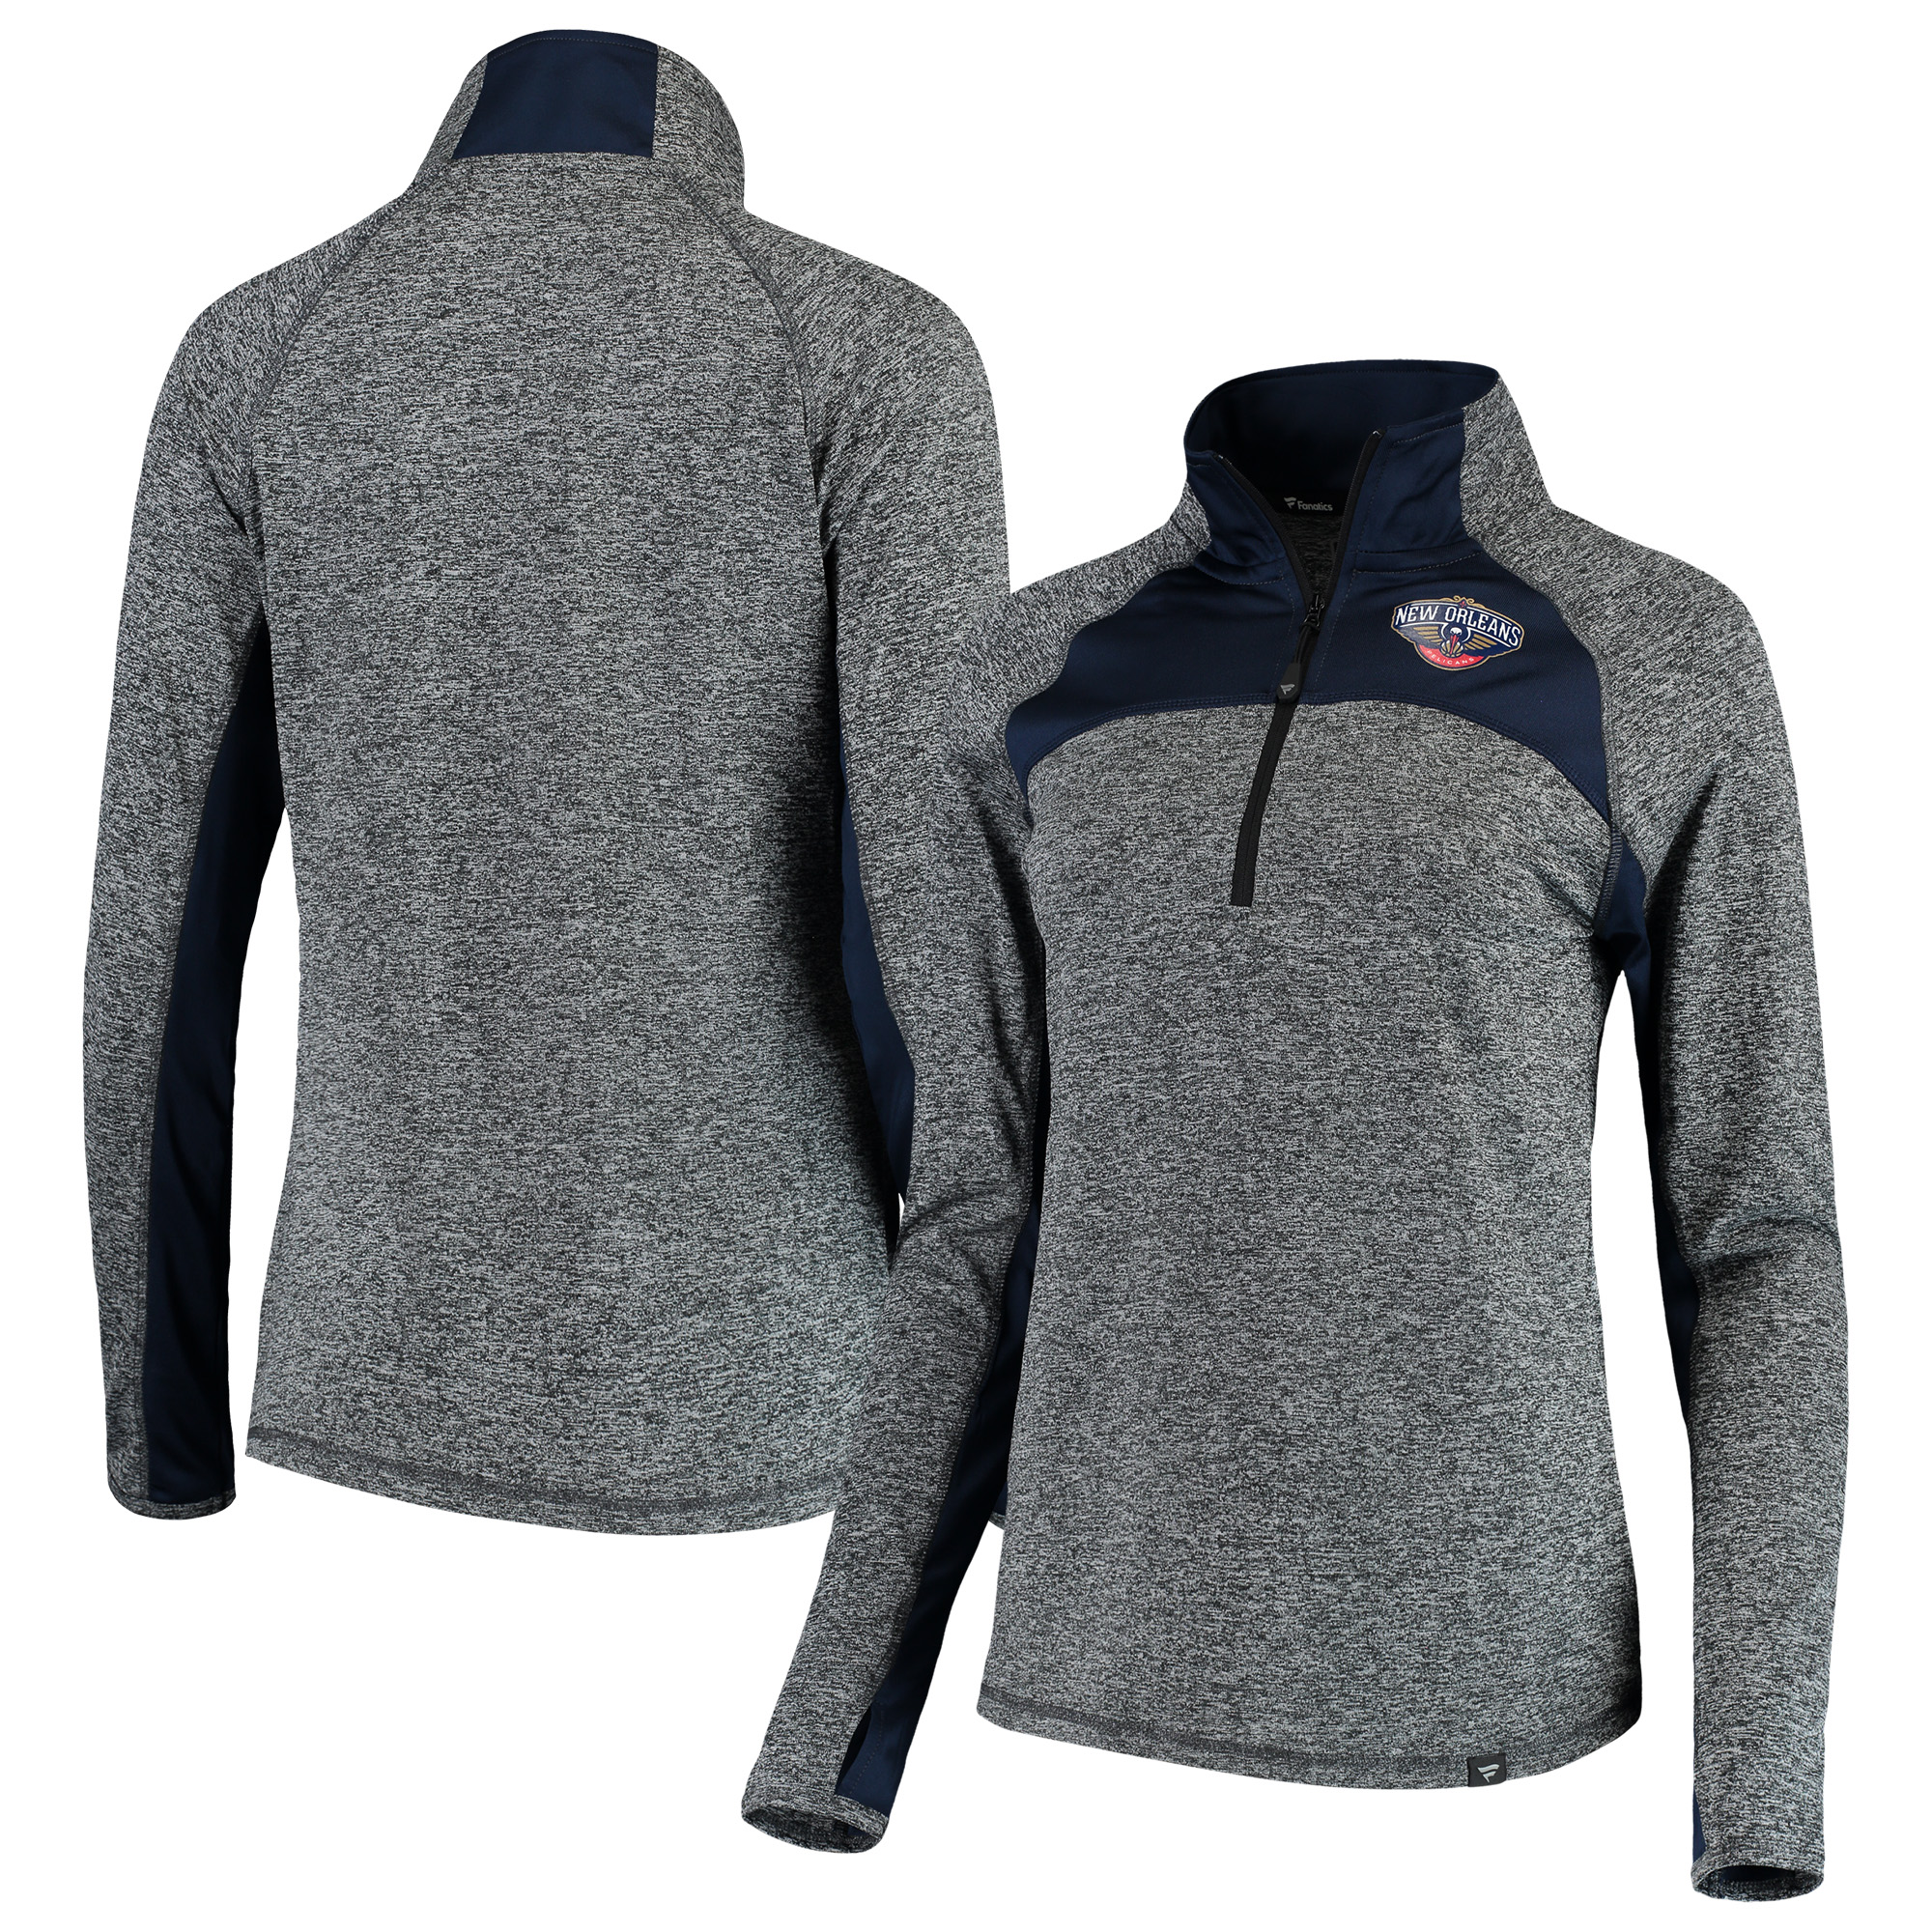 New Orleans Pelicans Fanatics Branded Women's Static Quarter-Zip Pullover Jacket - Heathered Gray